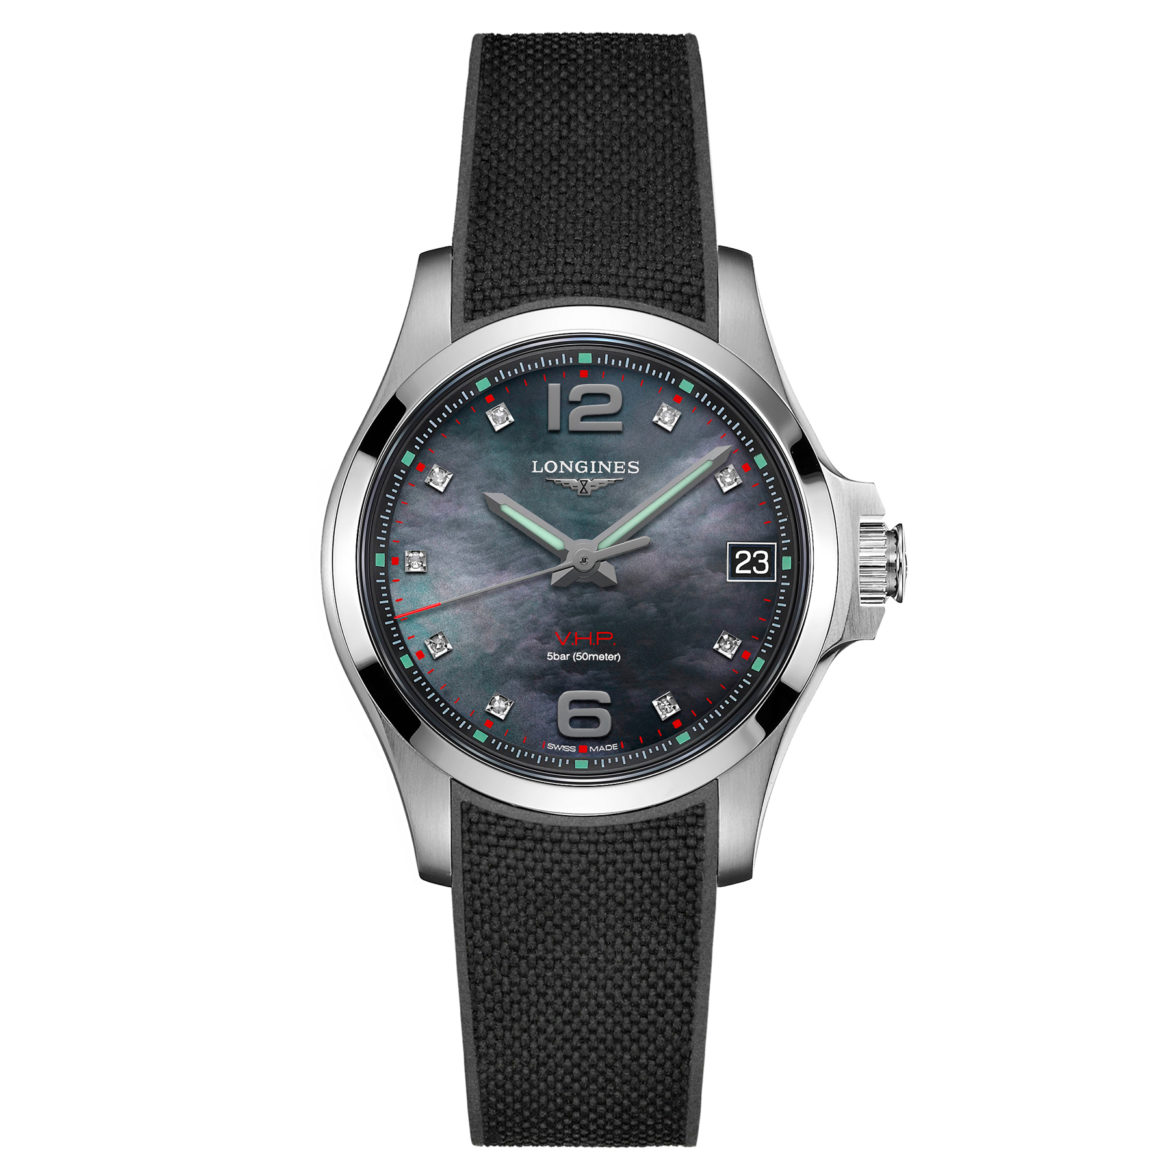 LONGINES</br/>Conquest VPH </br/>L33164889